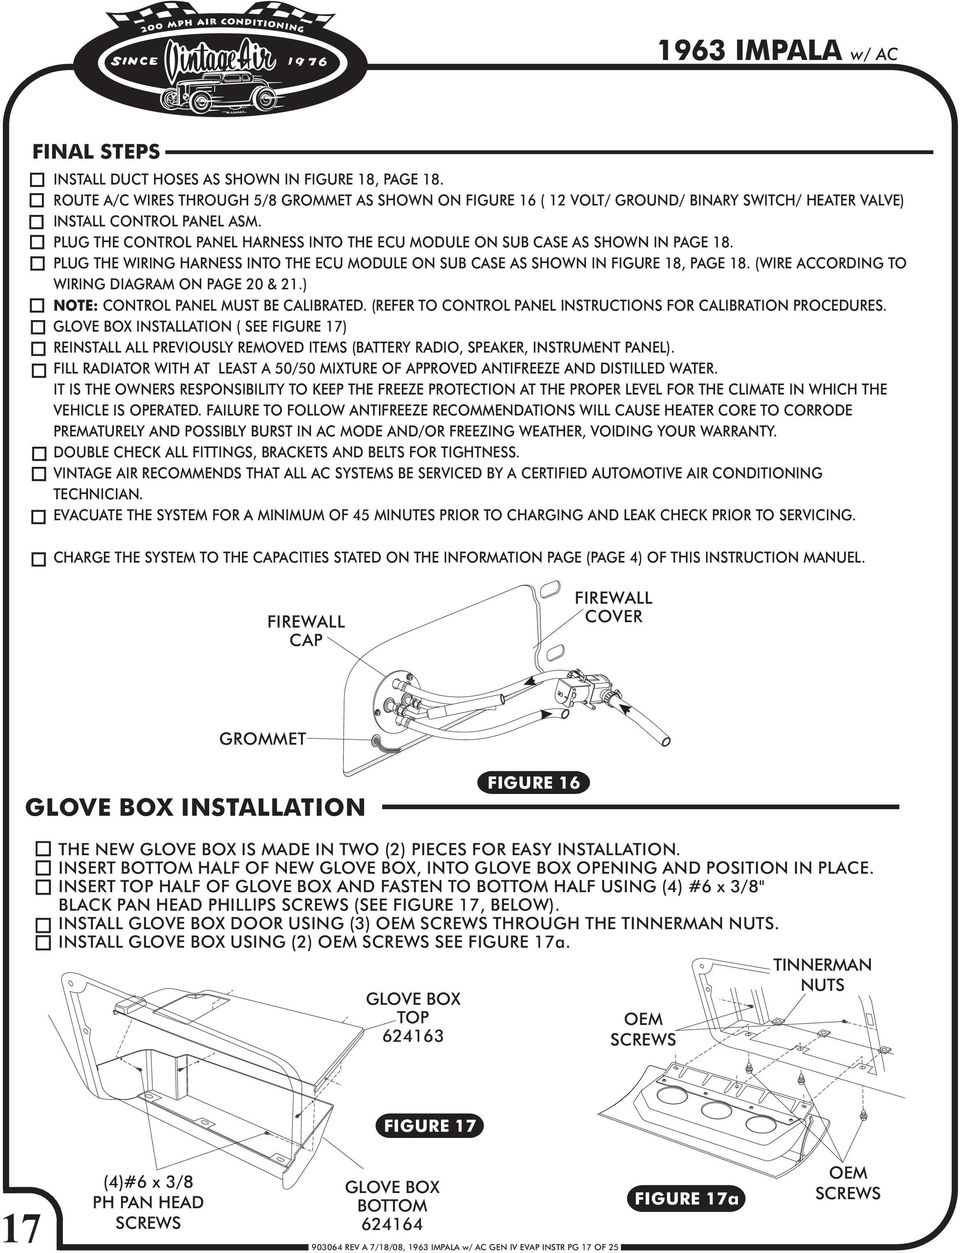 1963 Chevy Impala Gen Iv W Factory Air Pdf To Coil Wiring Diagram 2003 Wire According On Page 20 21 Note Control